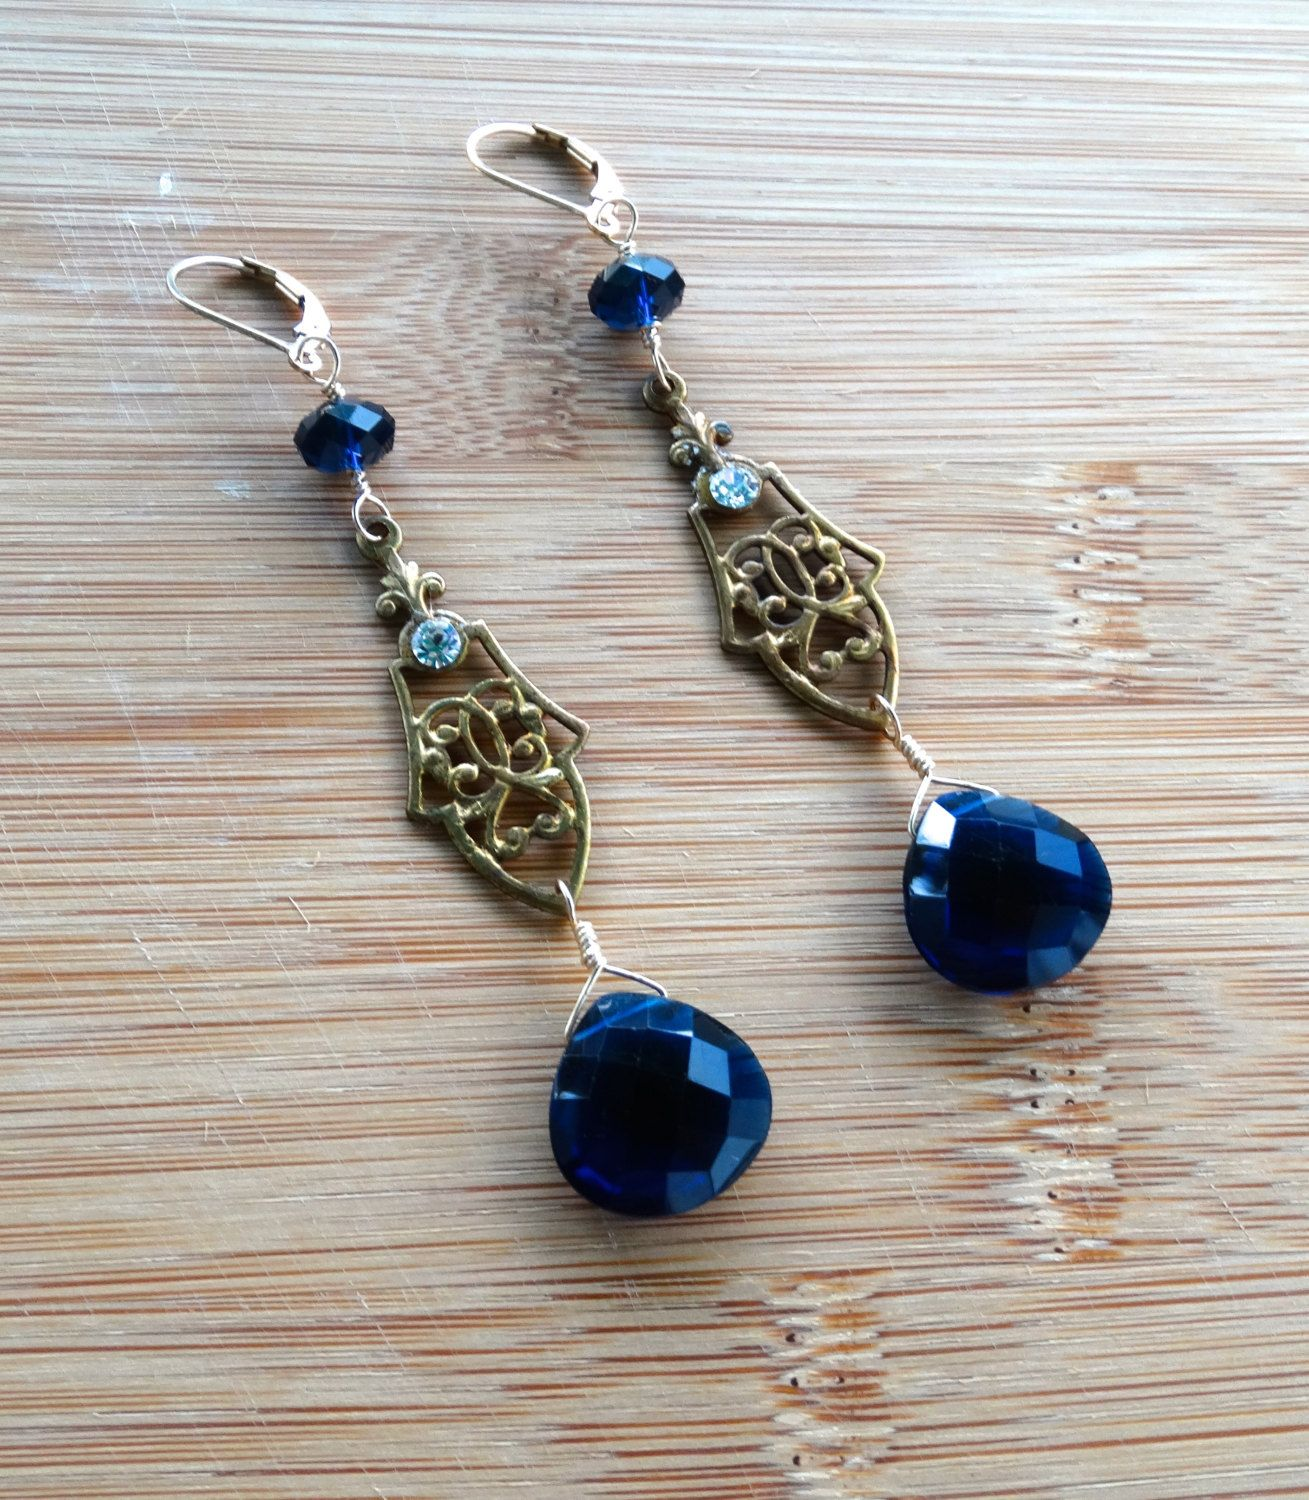 Deep blue Swarovski roundels, vintage brass stamping with handset rhinestone, cobalt blue hydro quartz, 14k goldfilled hooks and wire by ChrisAllenJewelry on Etsy